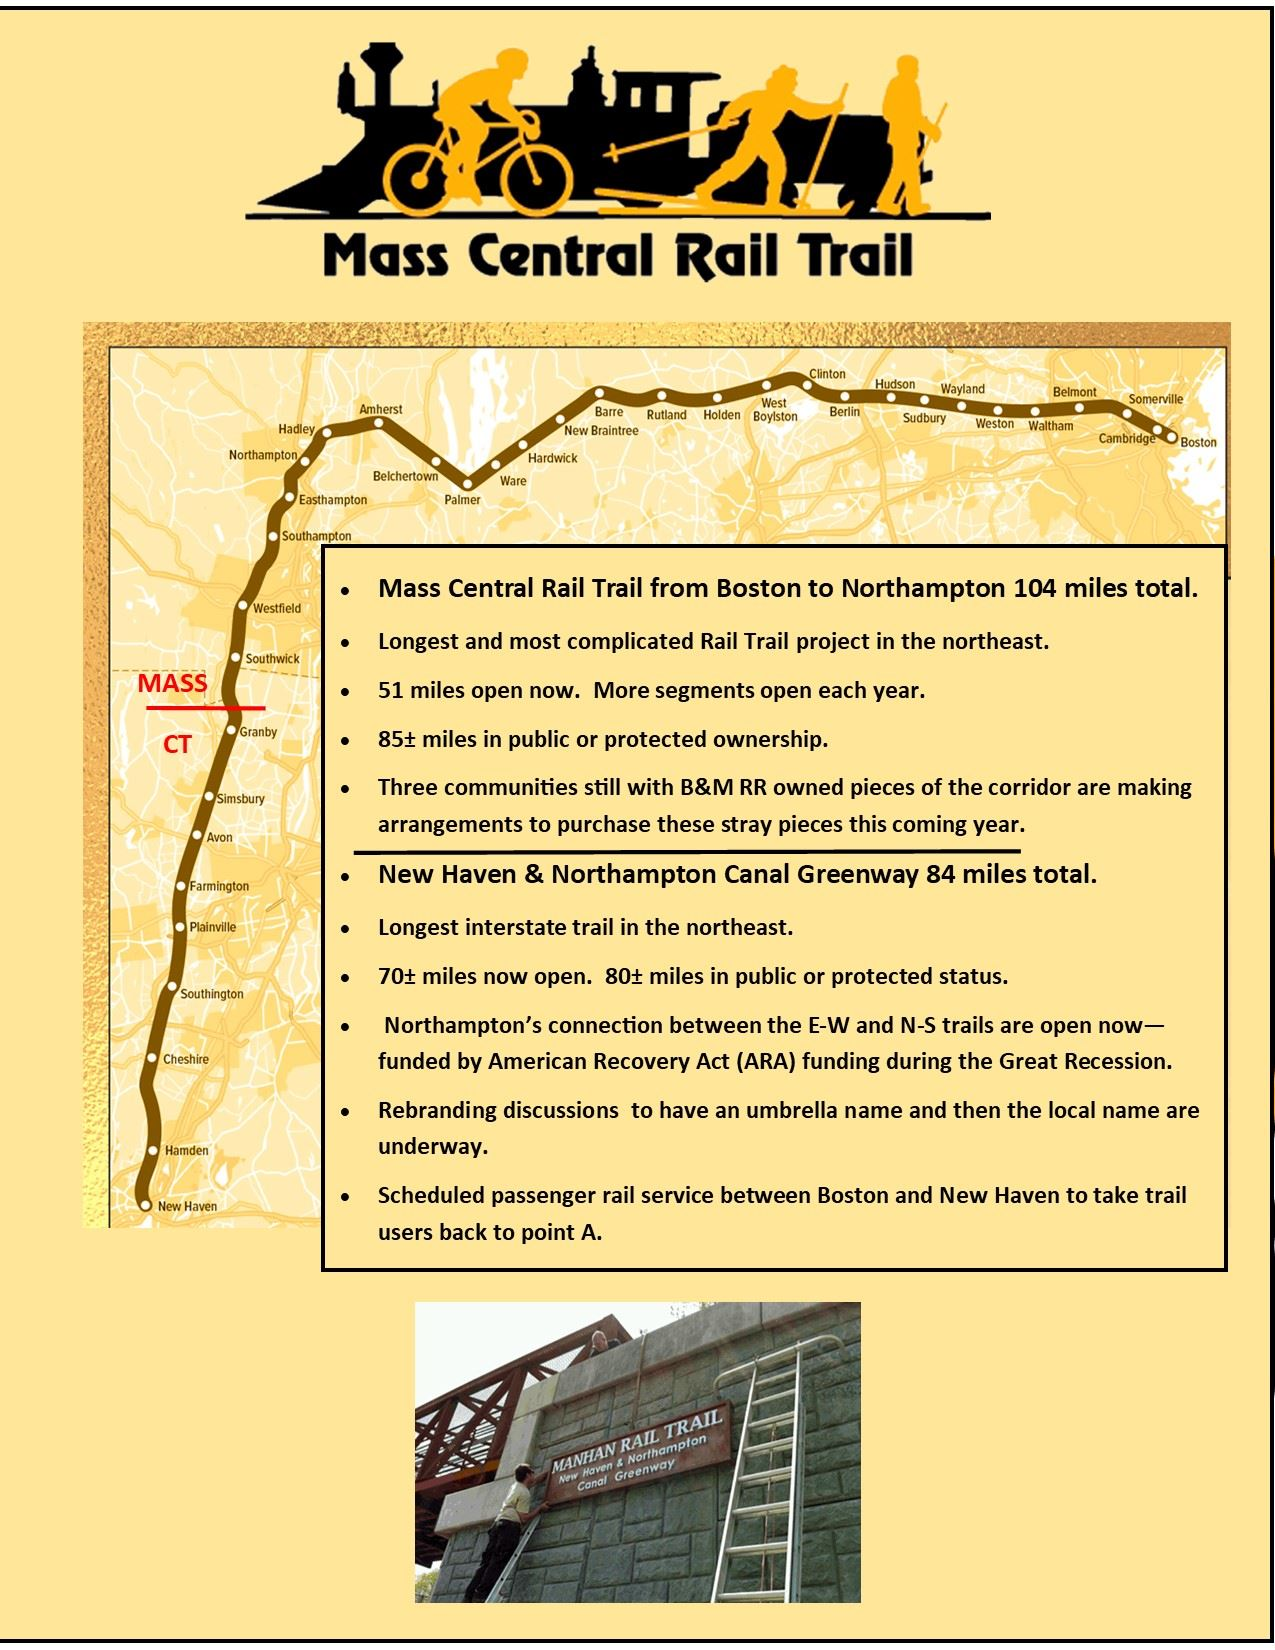 Mass Central Rail Trail and New Haven & Northampton Canal Greenway